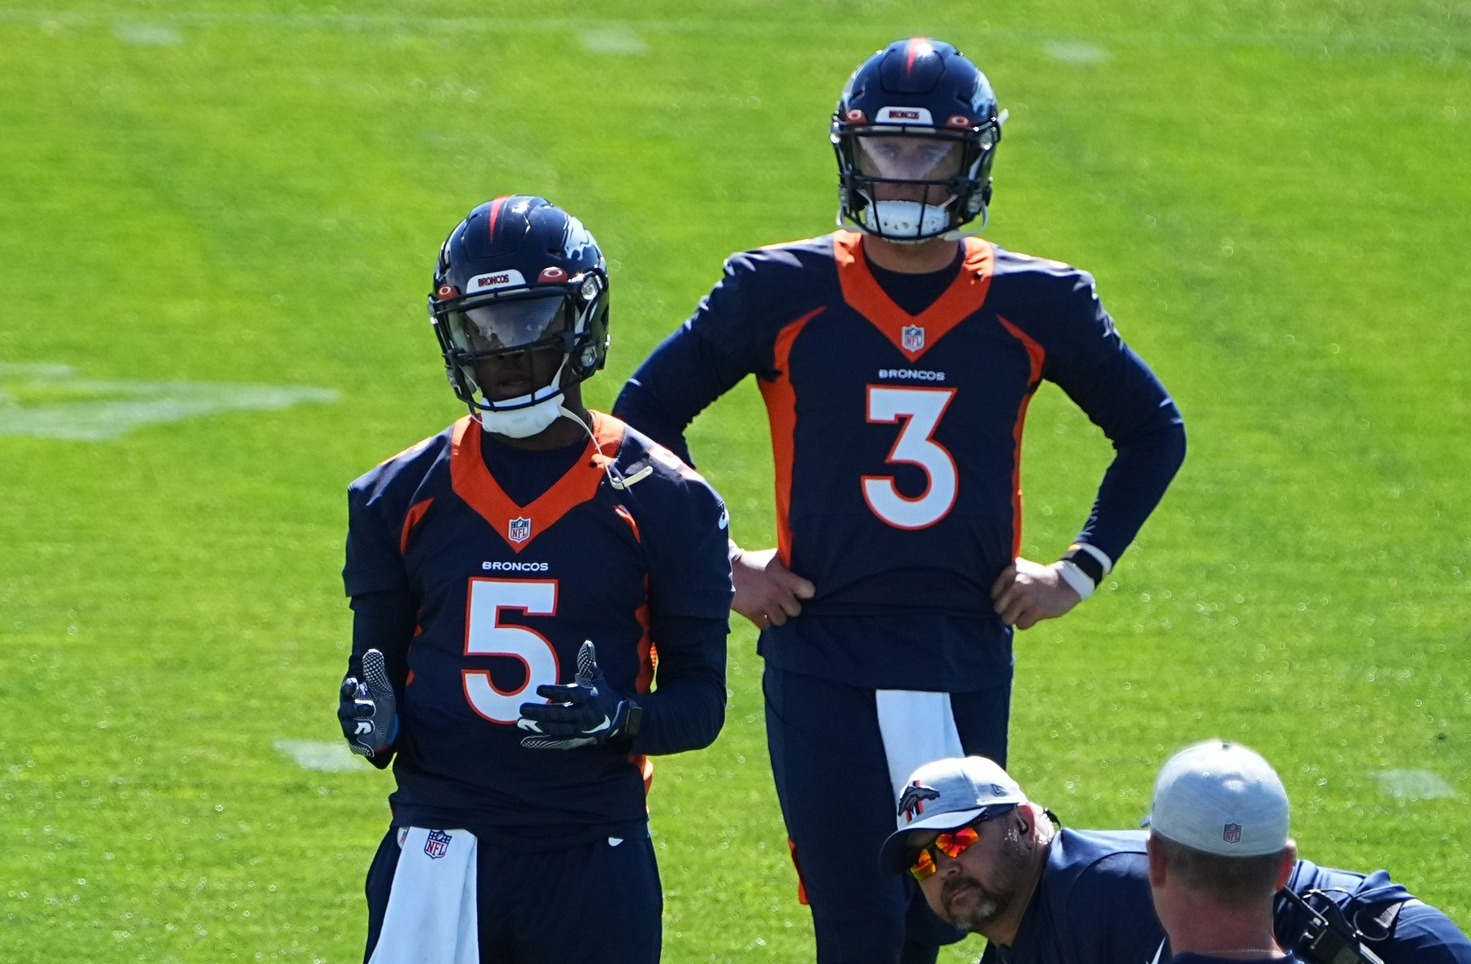 Broncos minicamp Day 2: Here's why giveaways could decide the QB competition